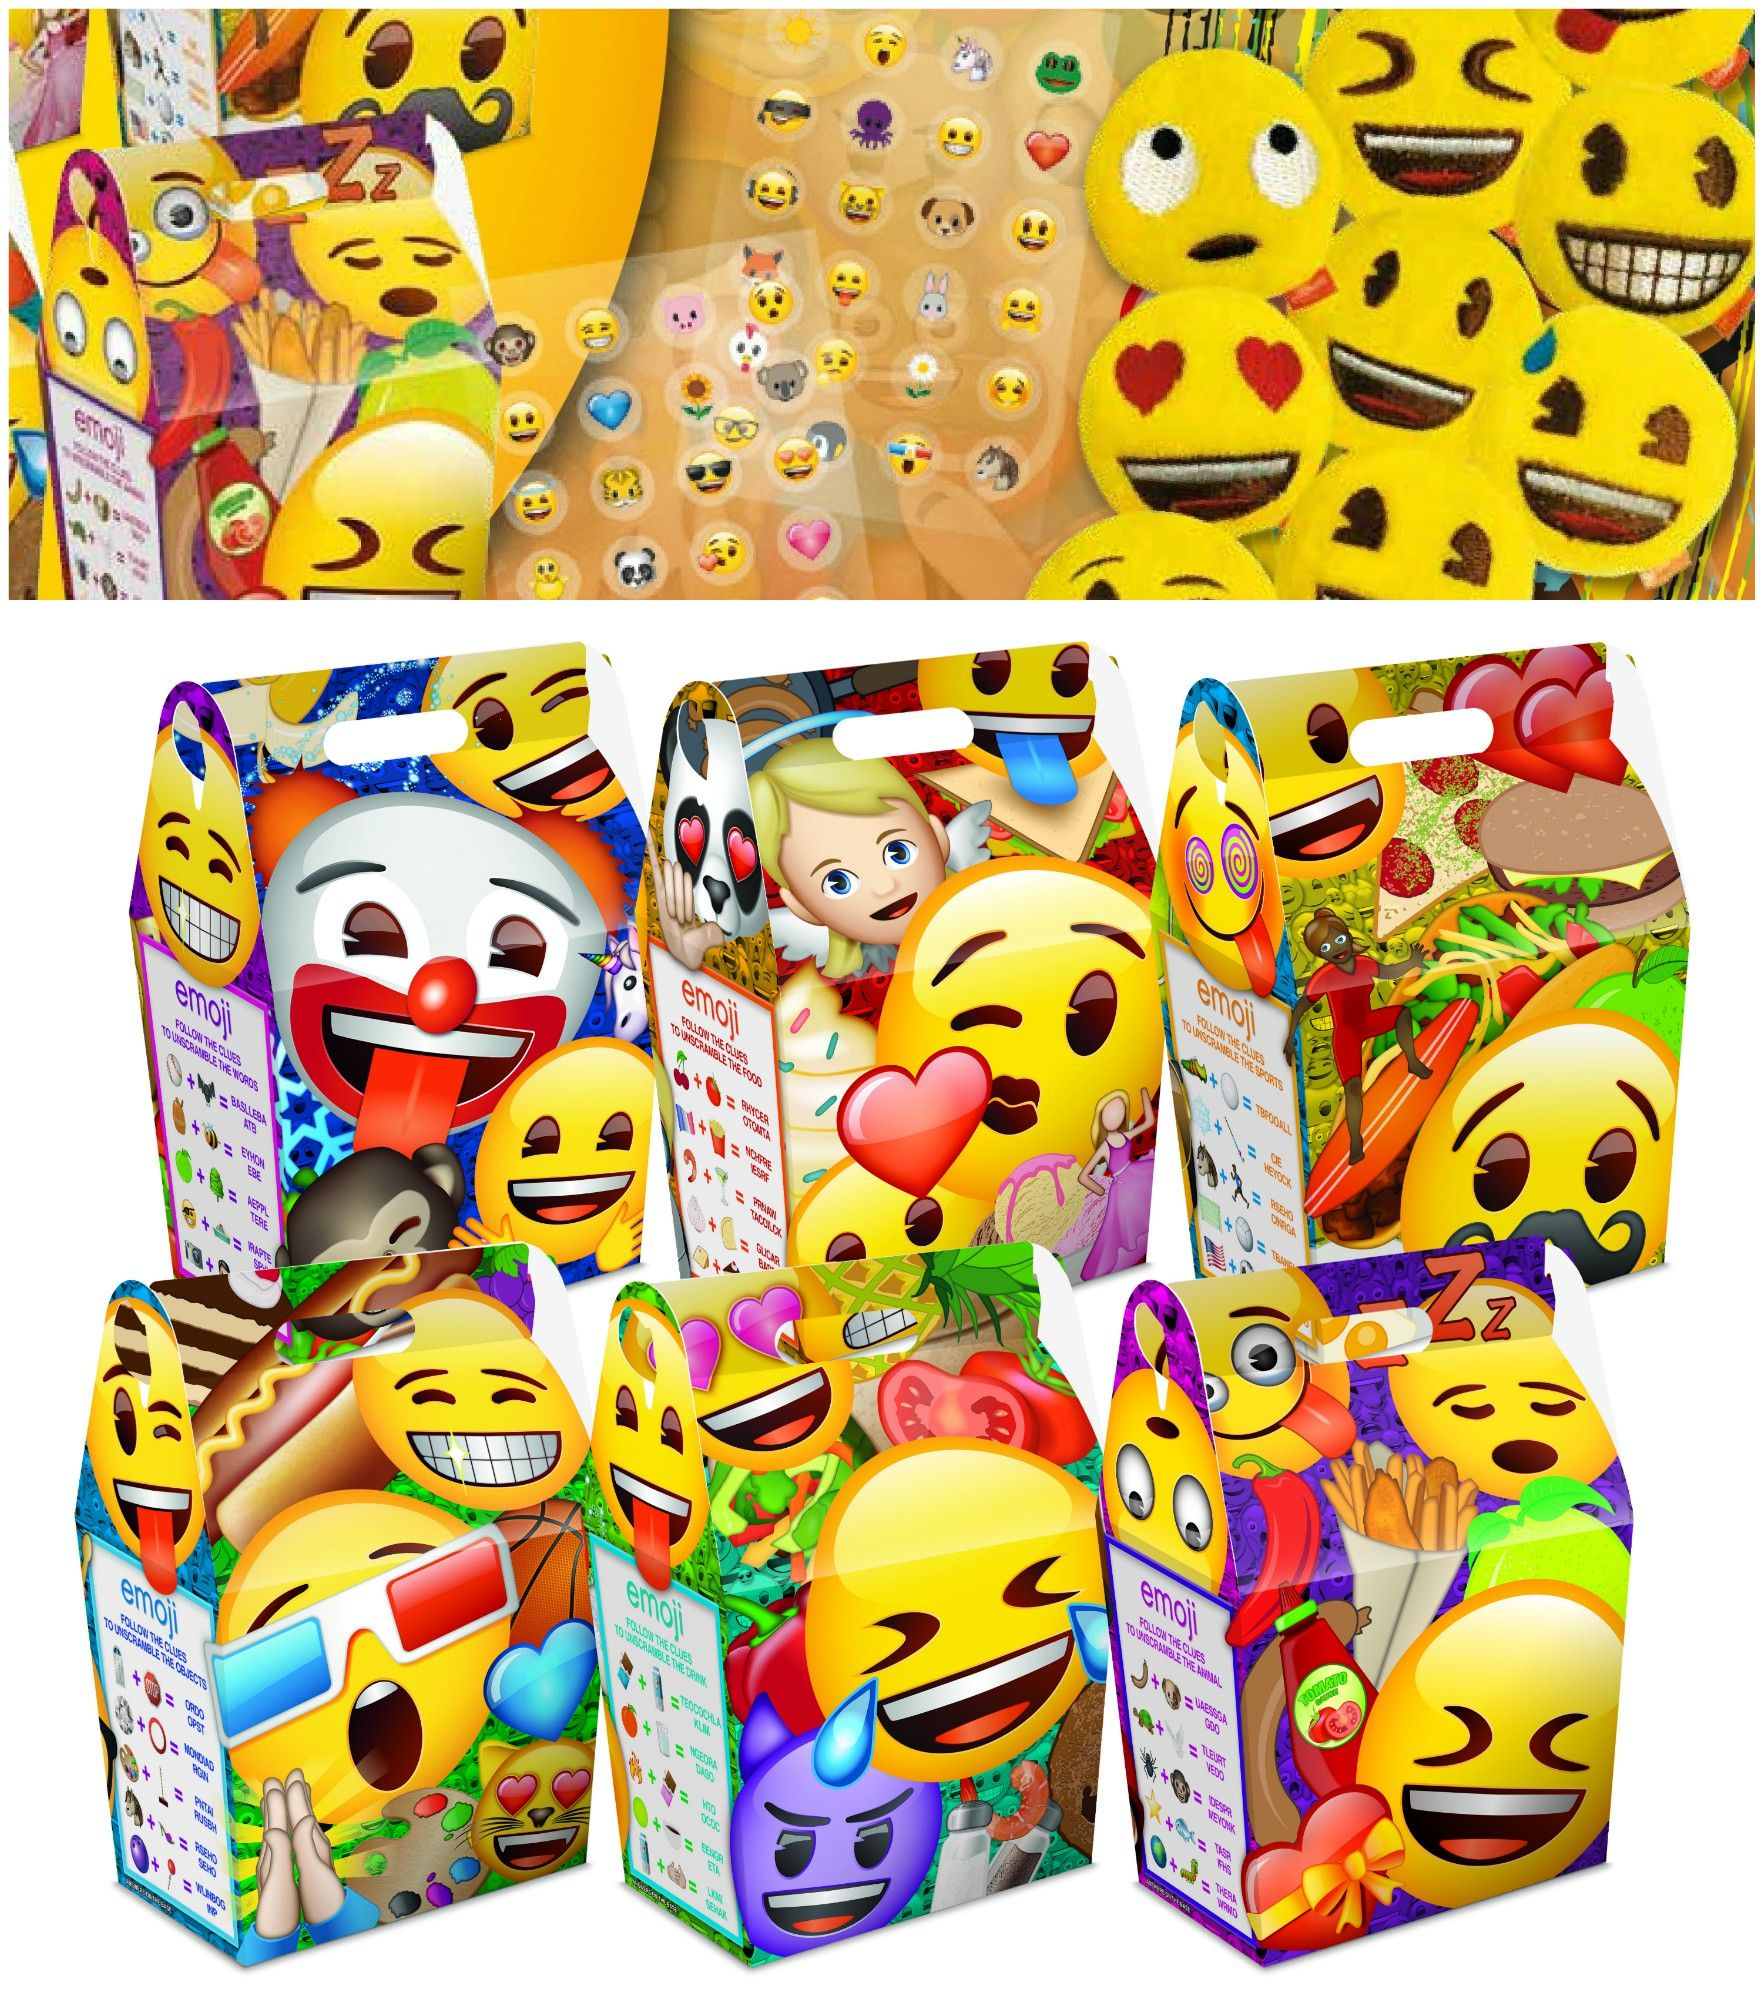 Emoji Birthday Party Bag Sets Cardboard Meal Lunch Box Includes Stickers Plush Toys